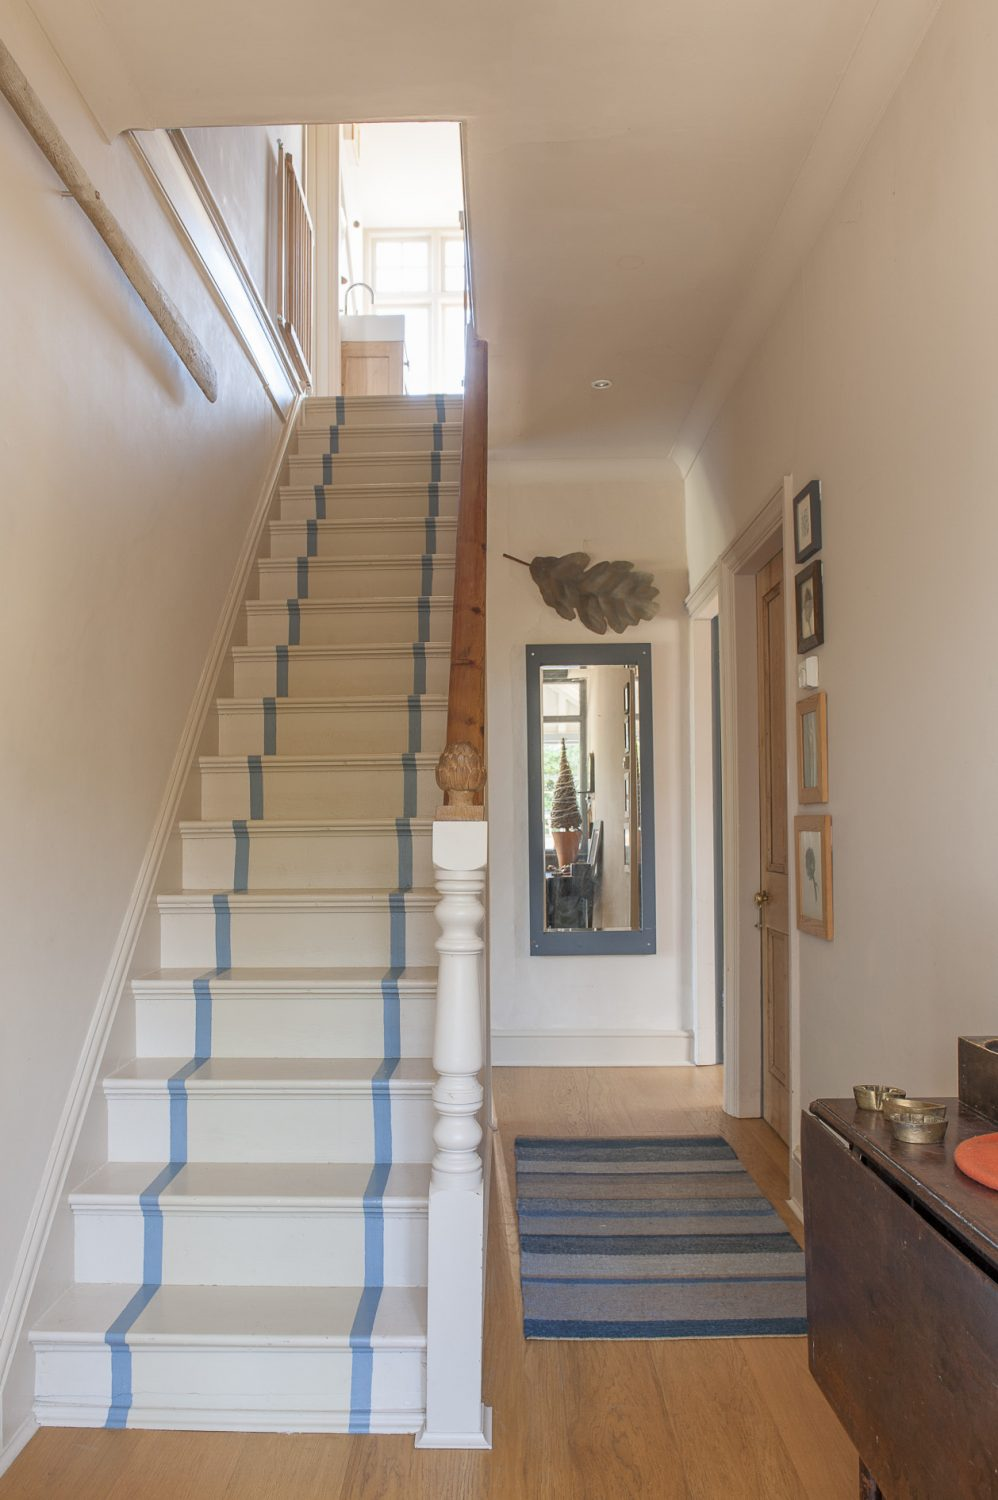 The stairs have been painted with non-slip paint, to give the effect of a carpet runner